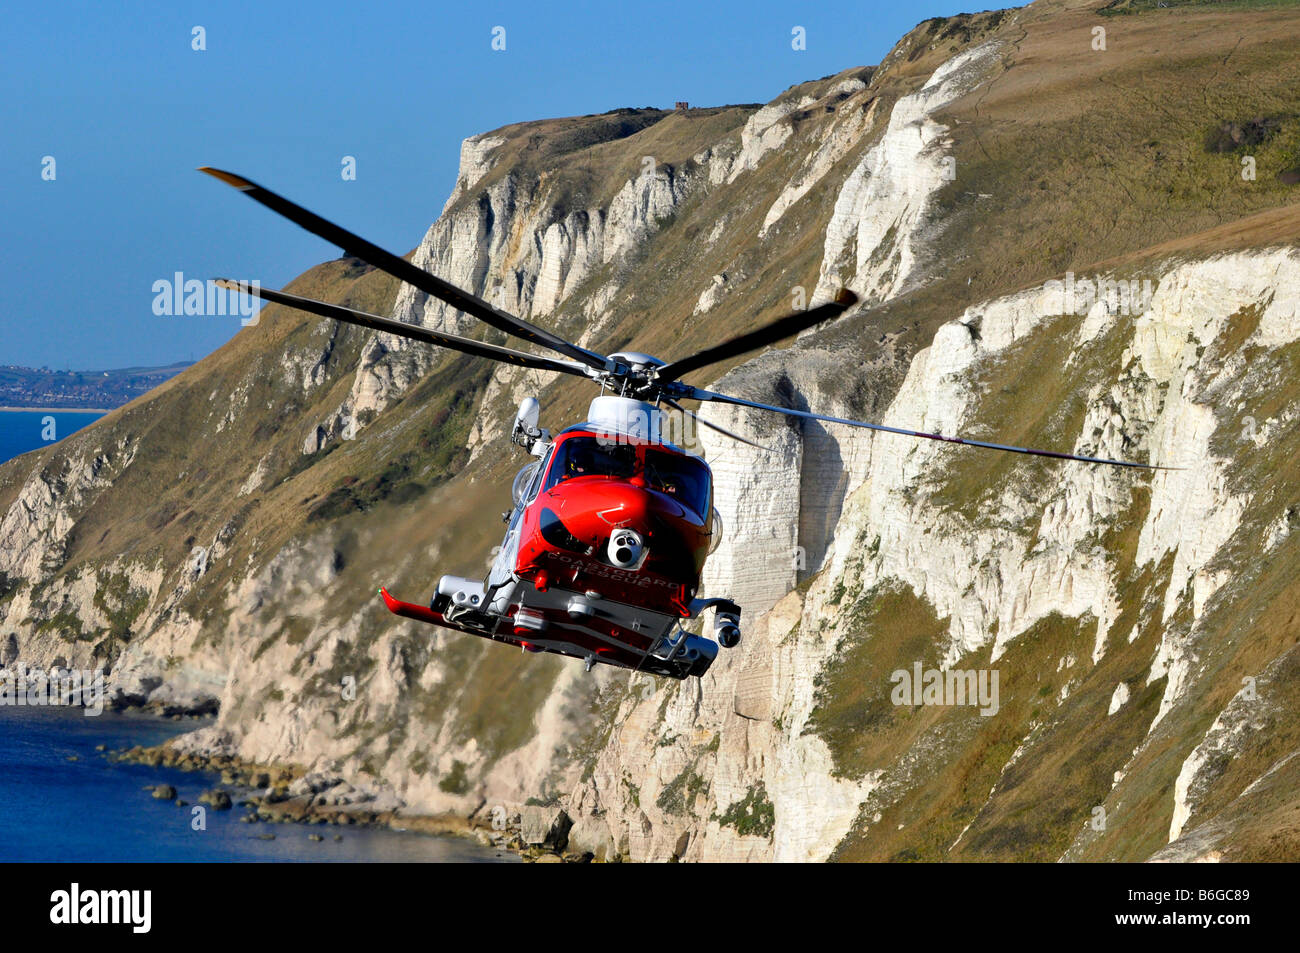 Augusta Westland AW139 search and rescue helicopter as operated by the MCA the British Maritime and Coastguard Agency - Stock Image